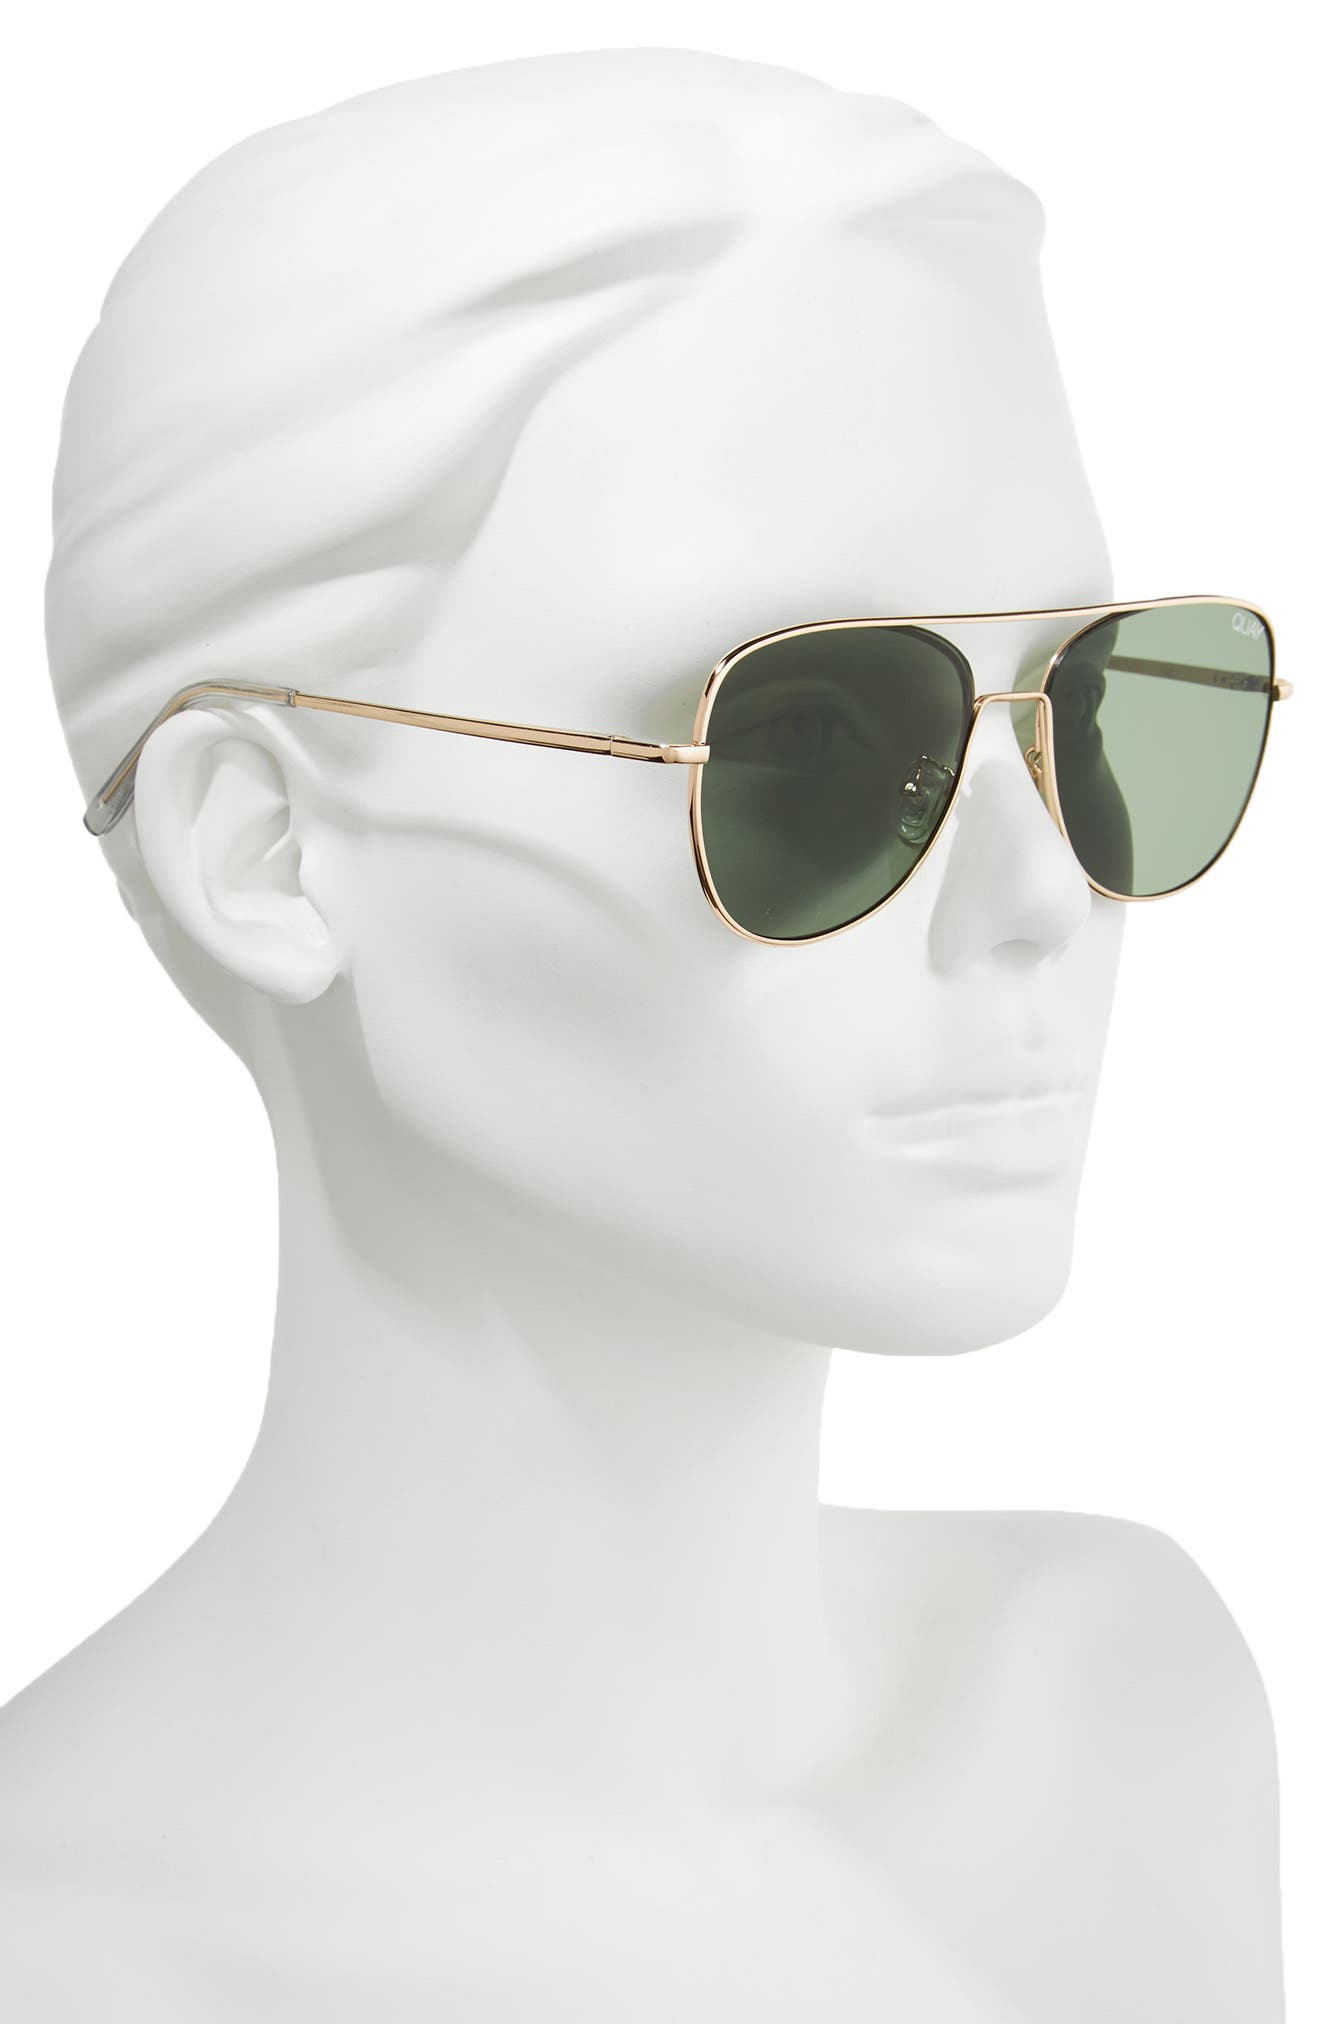 'Running Riot' 58mm Aviator Sunglasses,                             Alternate thumbnail 2, color,                             711